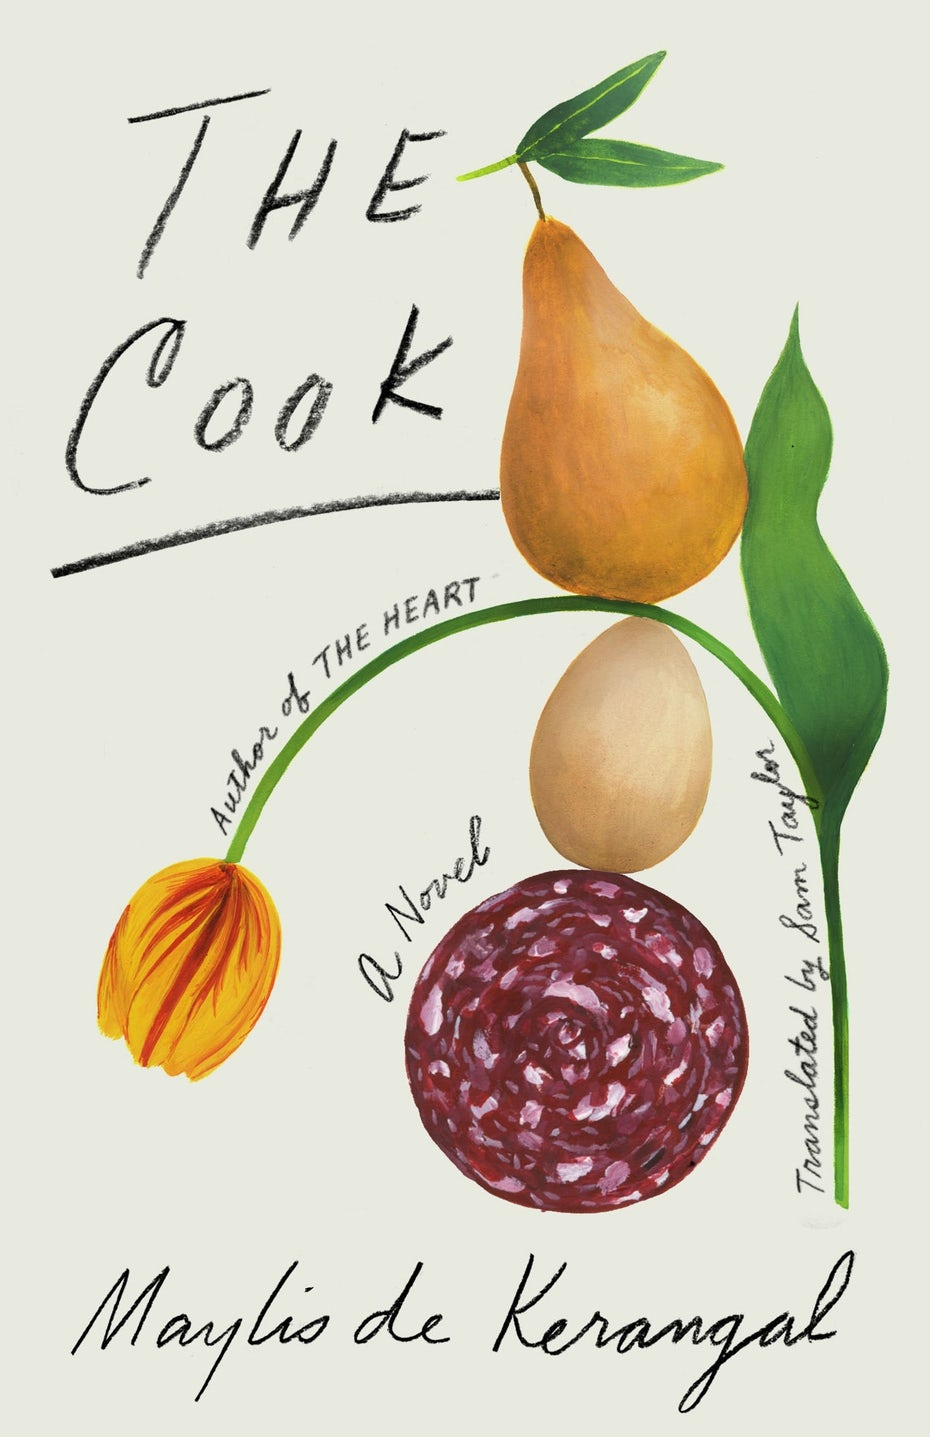 book cover trends 2020 example with handwritten pencil type and food illustratio